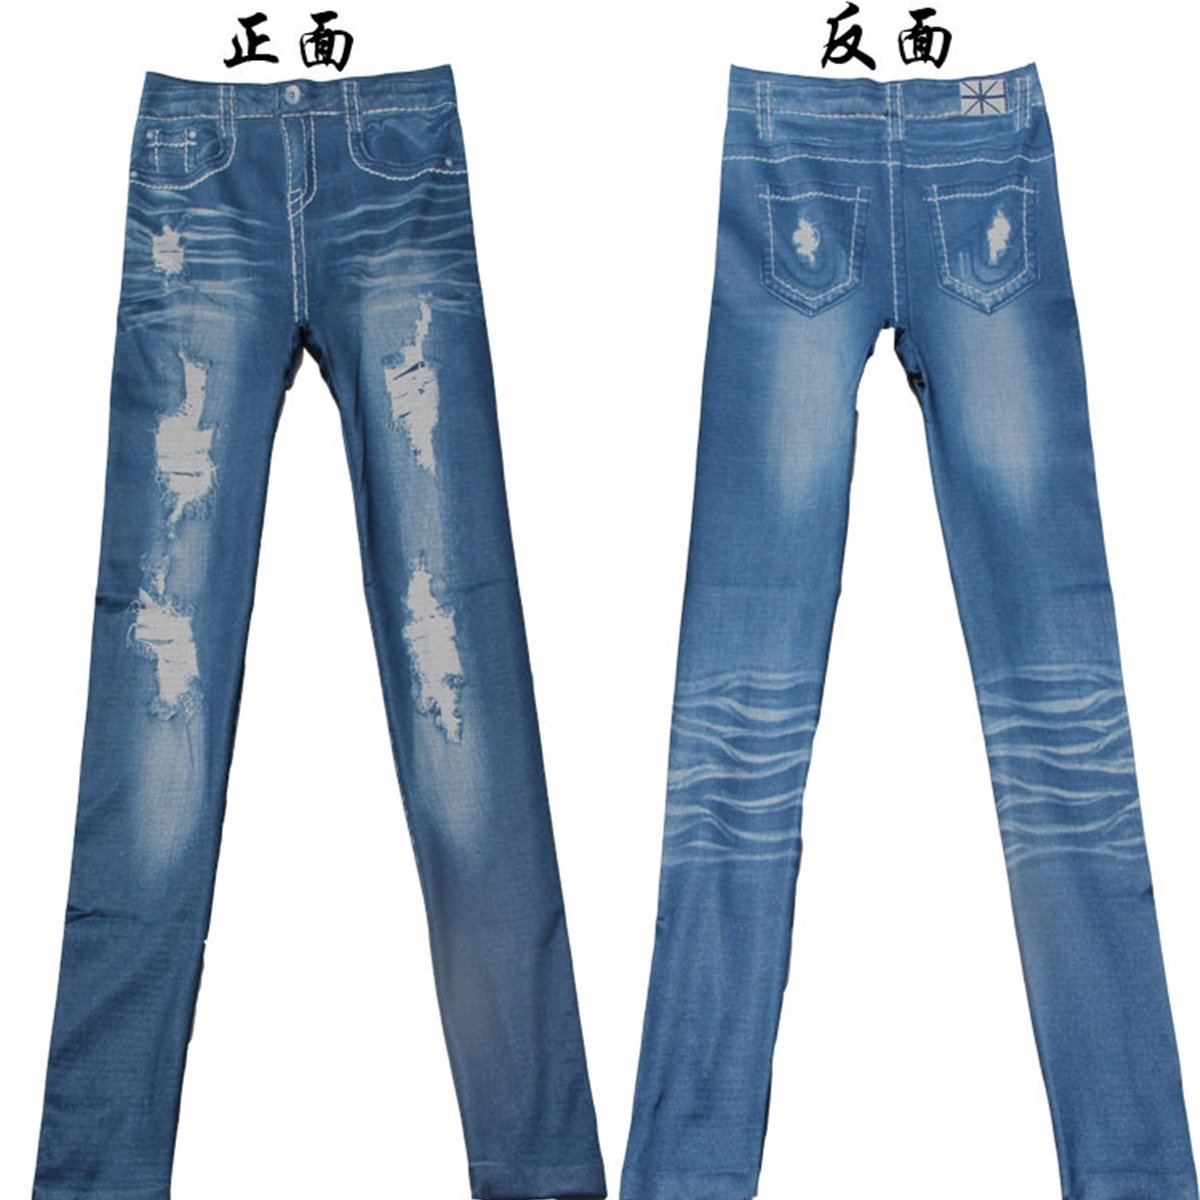 Women Fitness Skinny Stretch Pencil Slim Pants Elastic Hole Jeans Trouser Legging